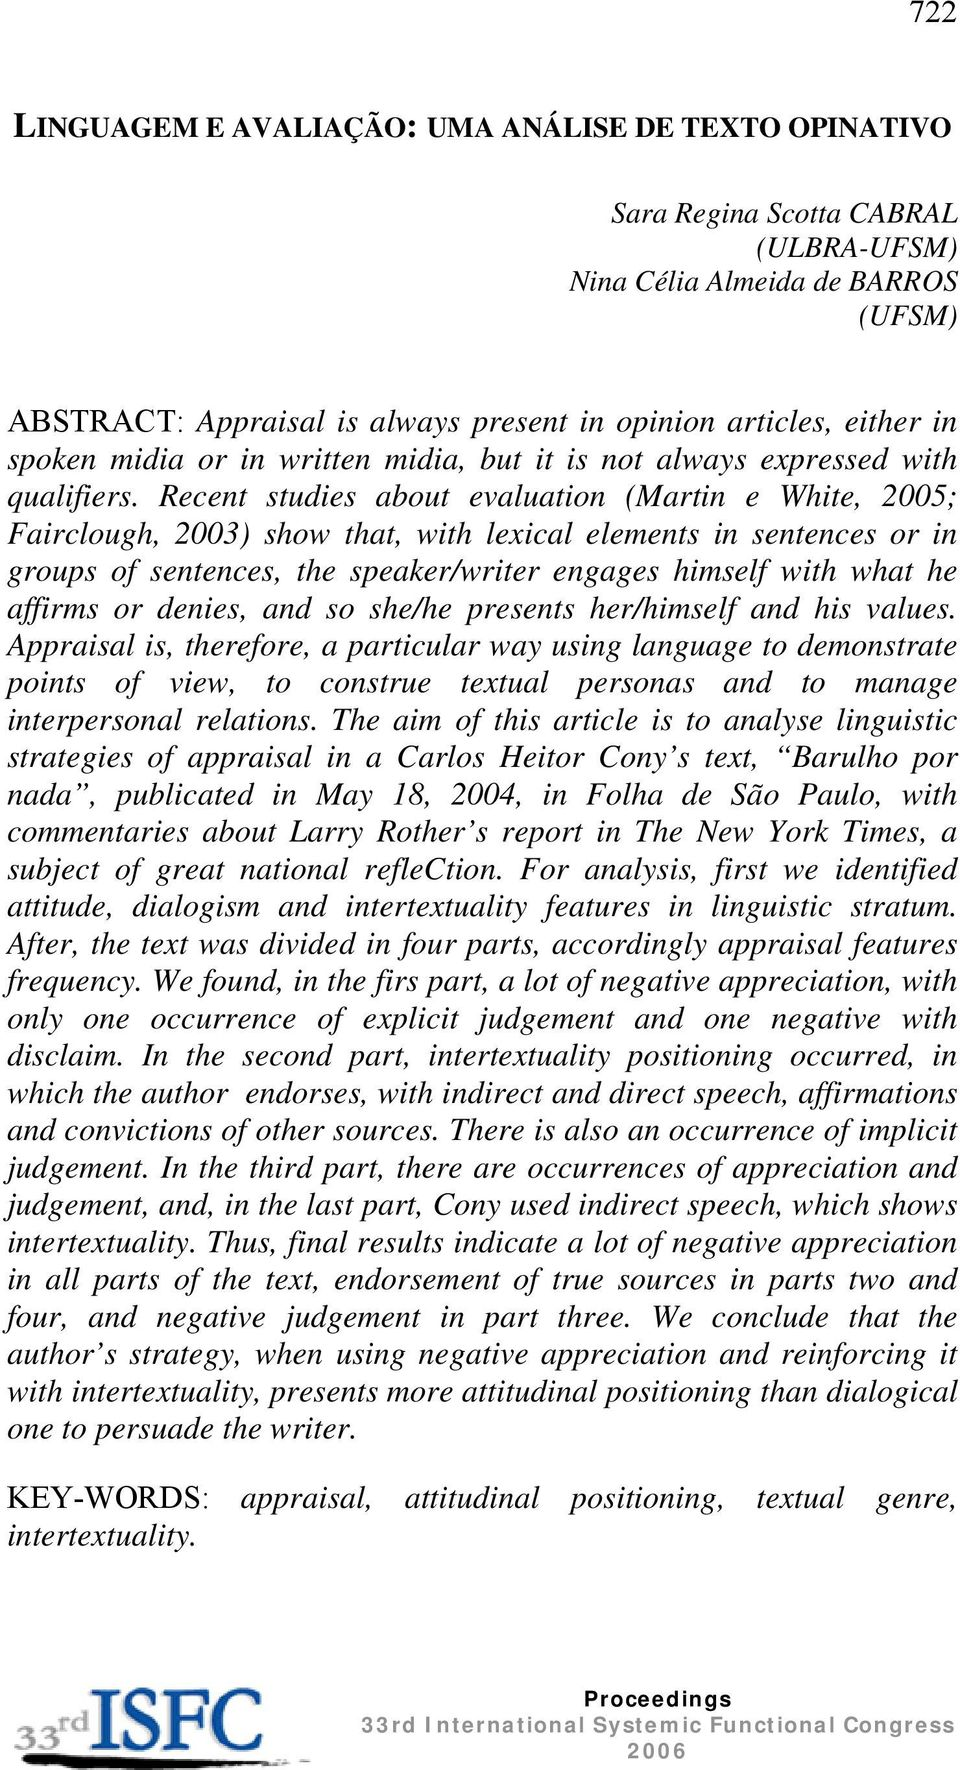 Recent studies about evaluation (Martin e White, 2005; Fairclough, 2003) show that, with lexical elements in sentences or in groups of sentences, the speaker/writer engages himself with what he